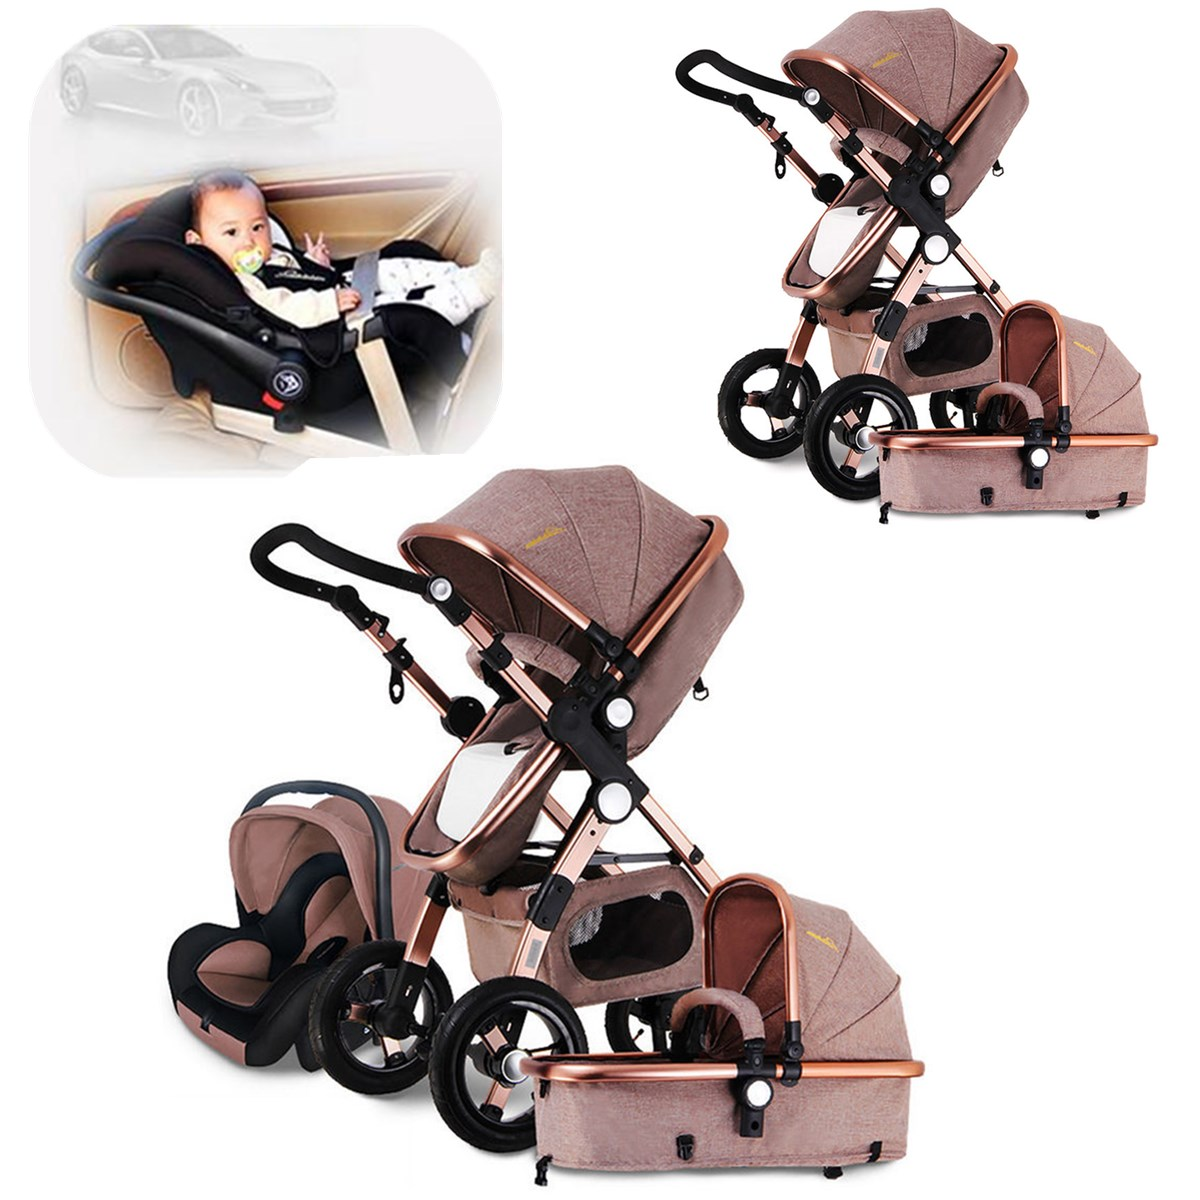 3 in 1 luxury baby stroller high view pram foldable pushchair bassinet car seat ebay. Black Bedroom Furniture Sets. Home Design Ideas